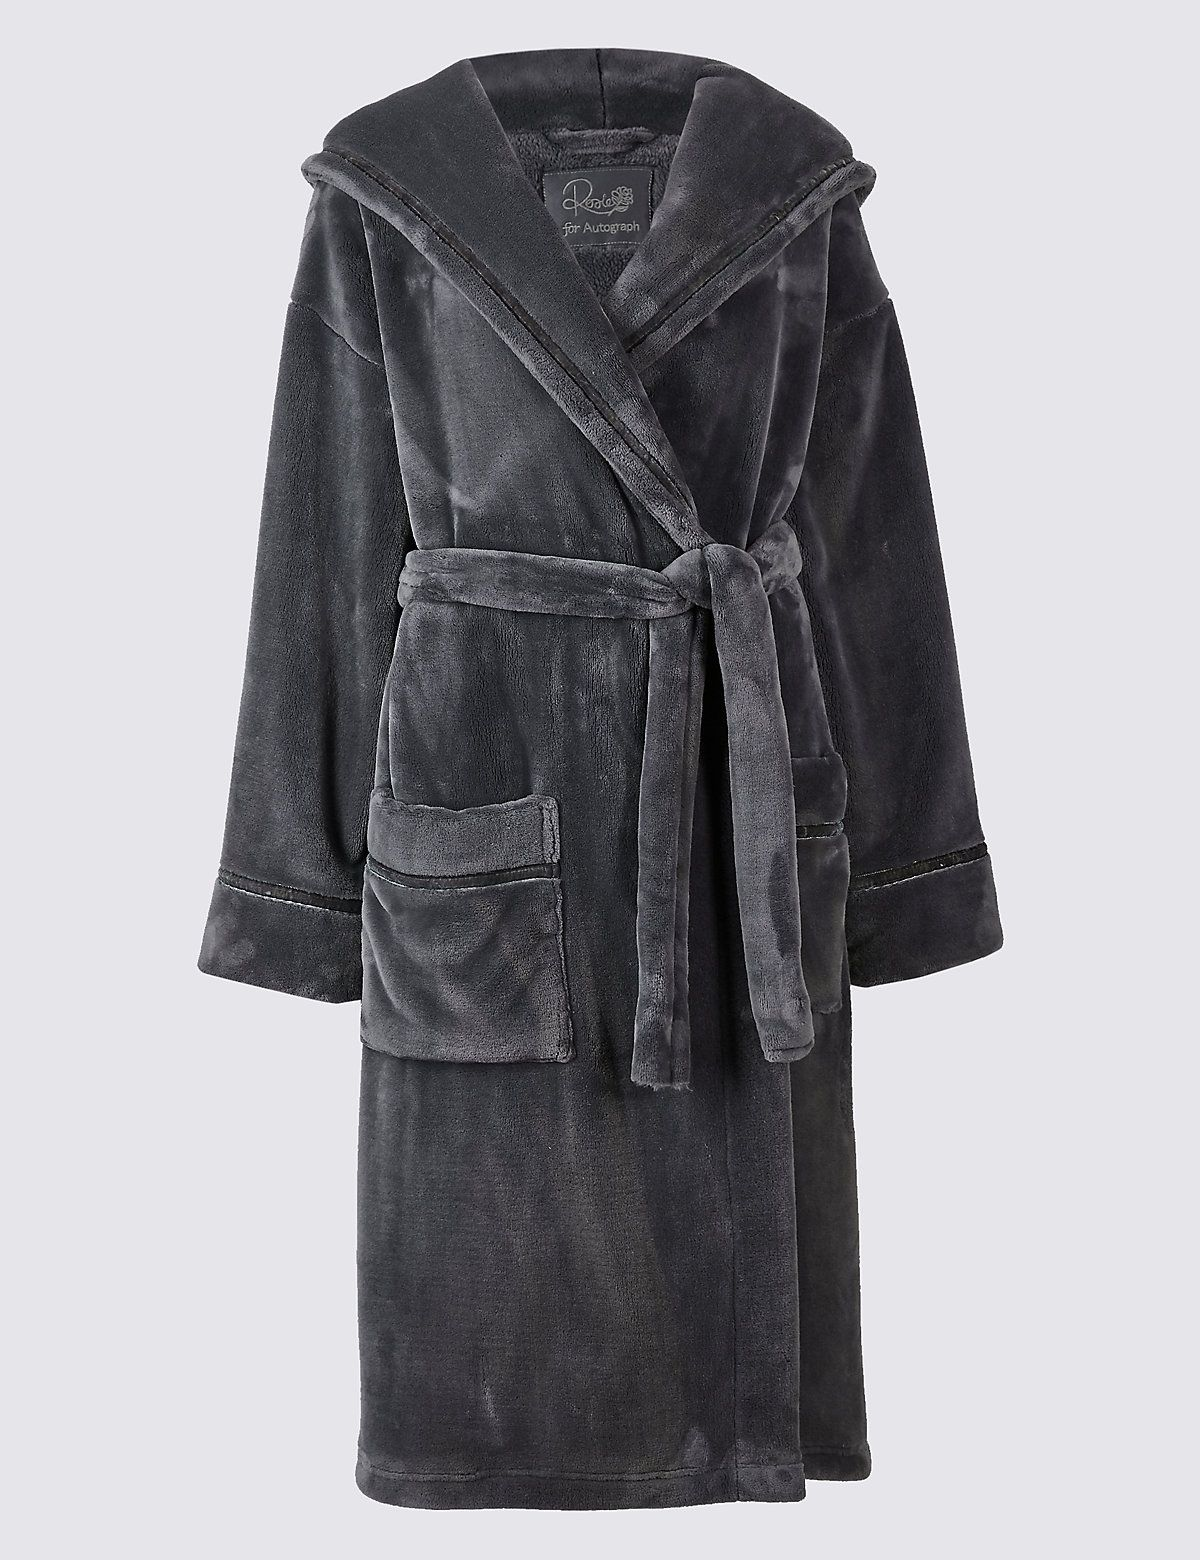 Rosie for autograph dressing gown | Stuff I like | Pinterest ...